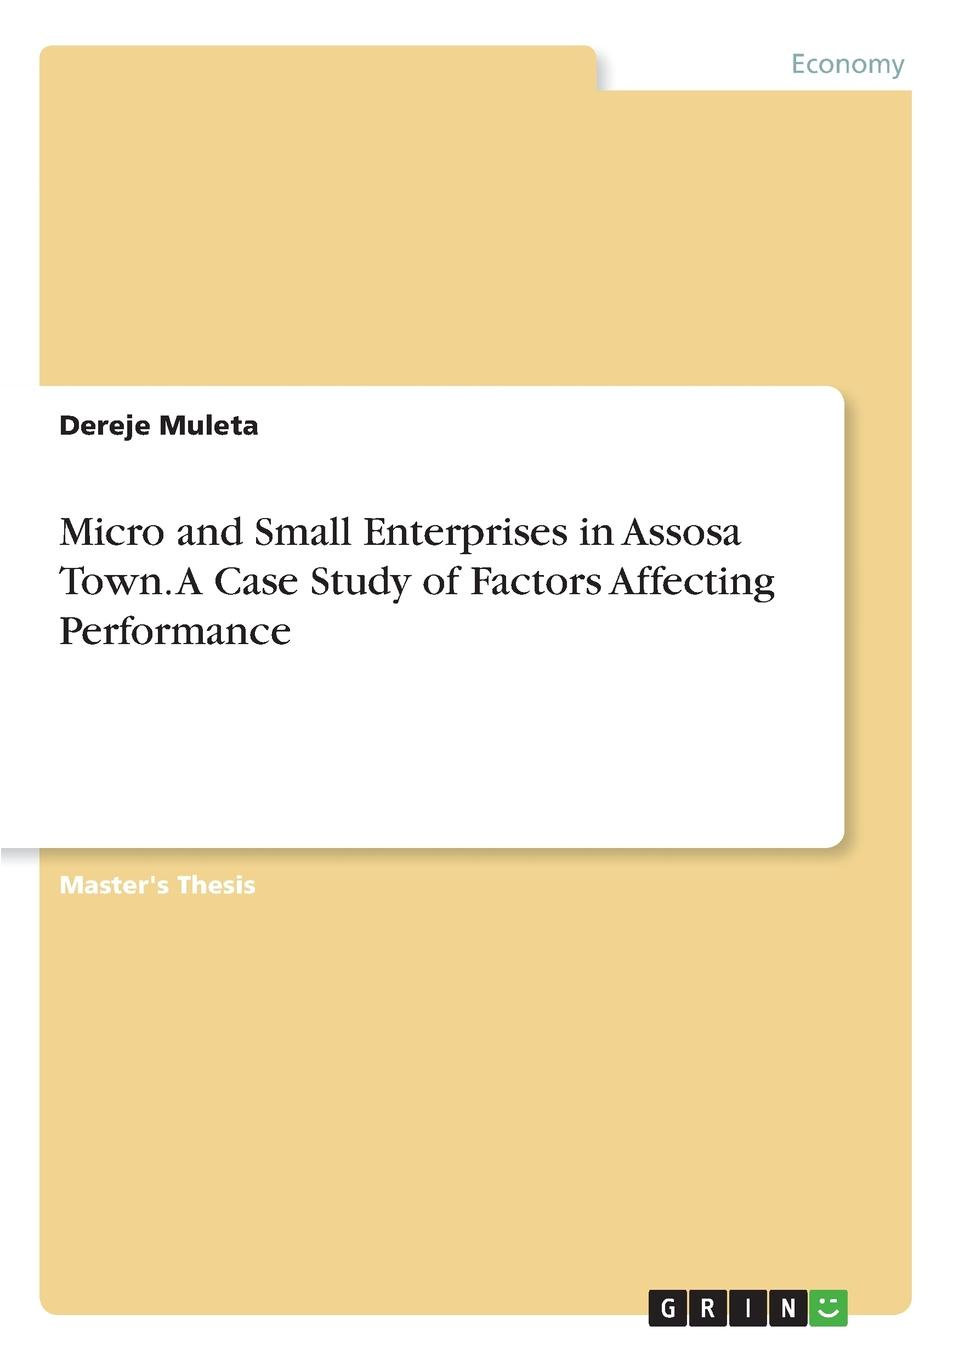 цены Dereje Muleta Micro and Small Enterprises in Assosa Town. A Case Study of Factors Affecting Performance